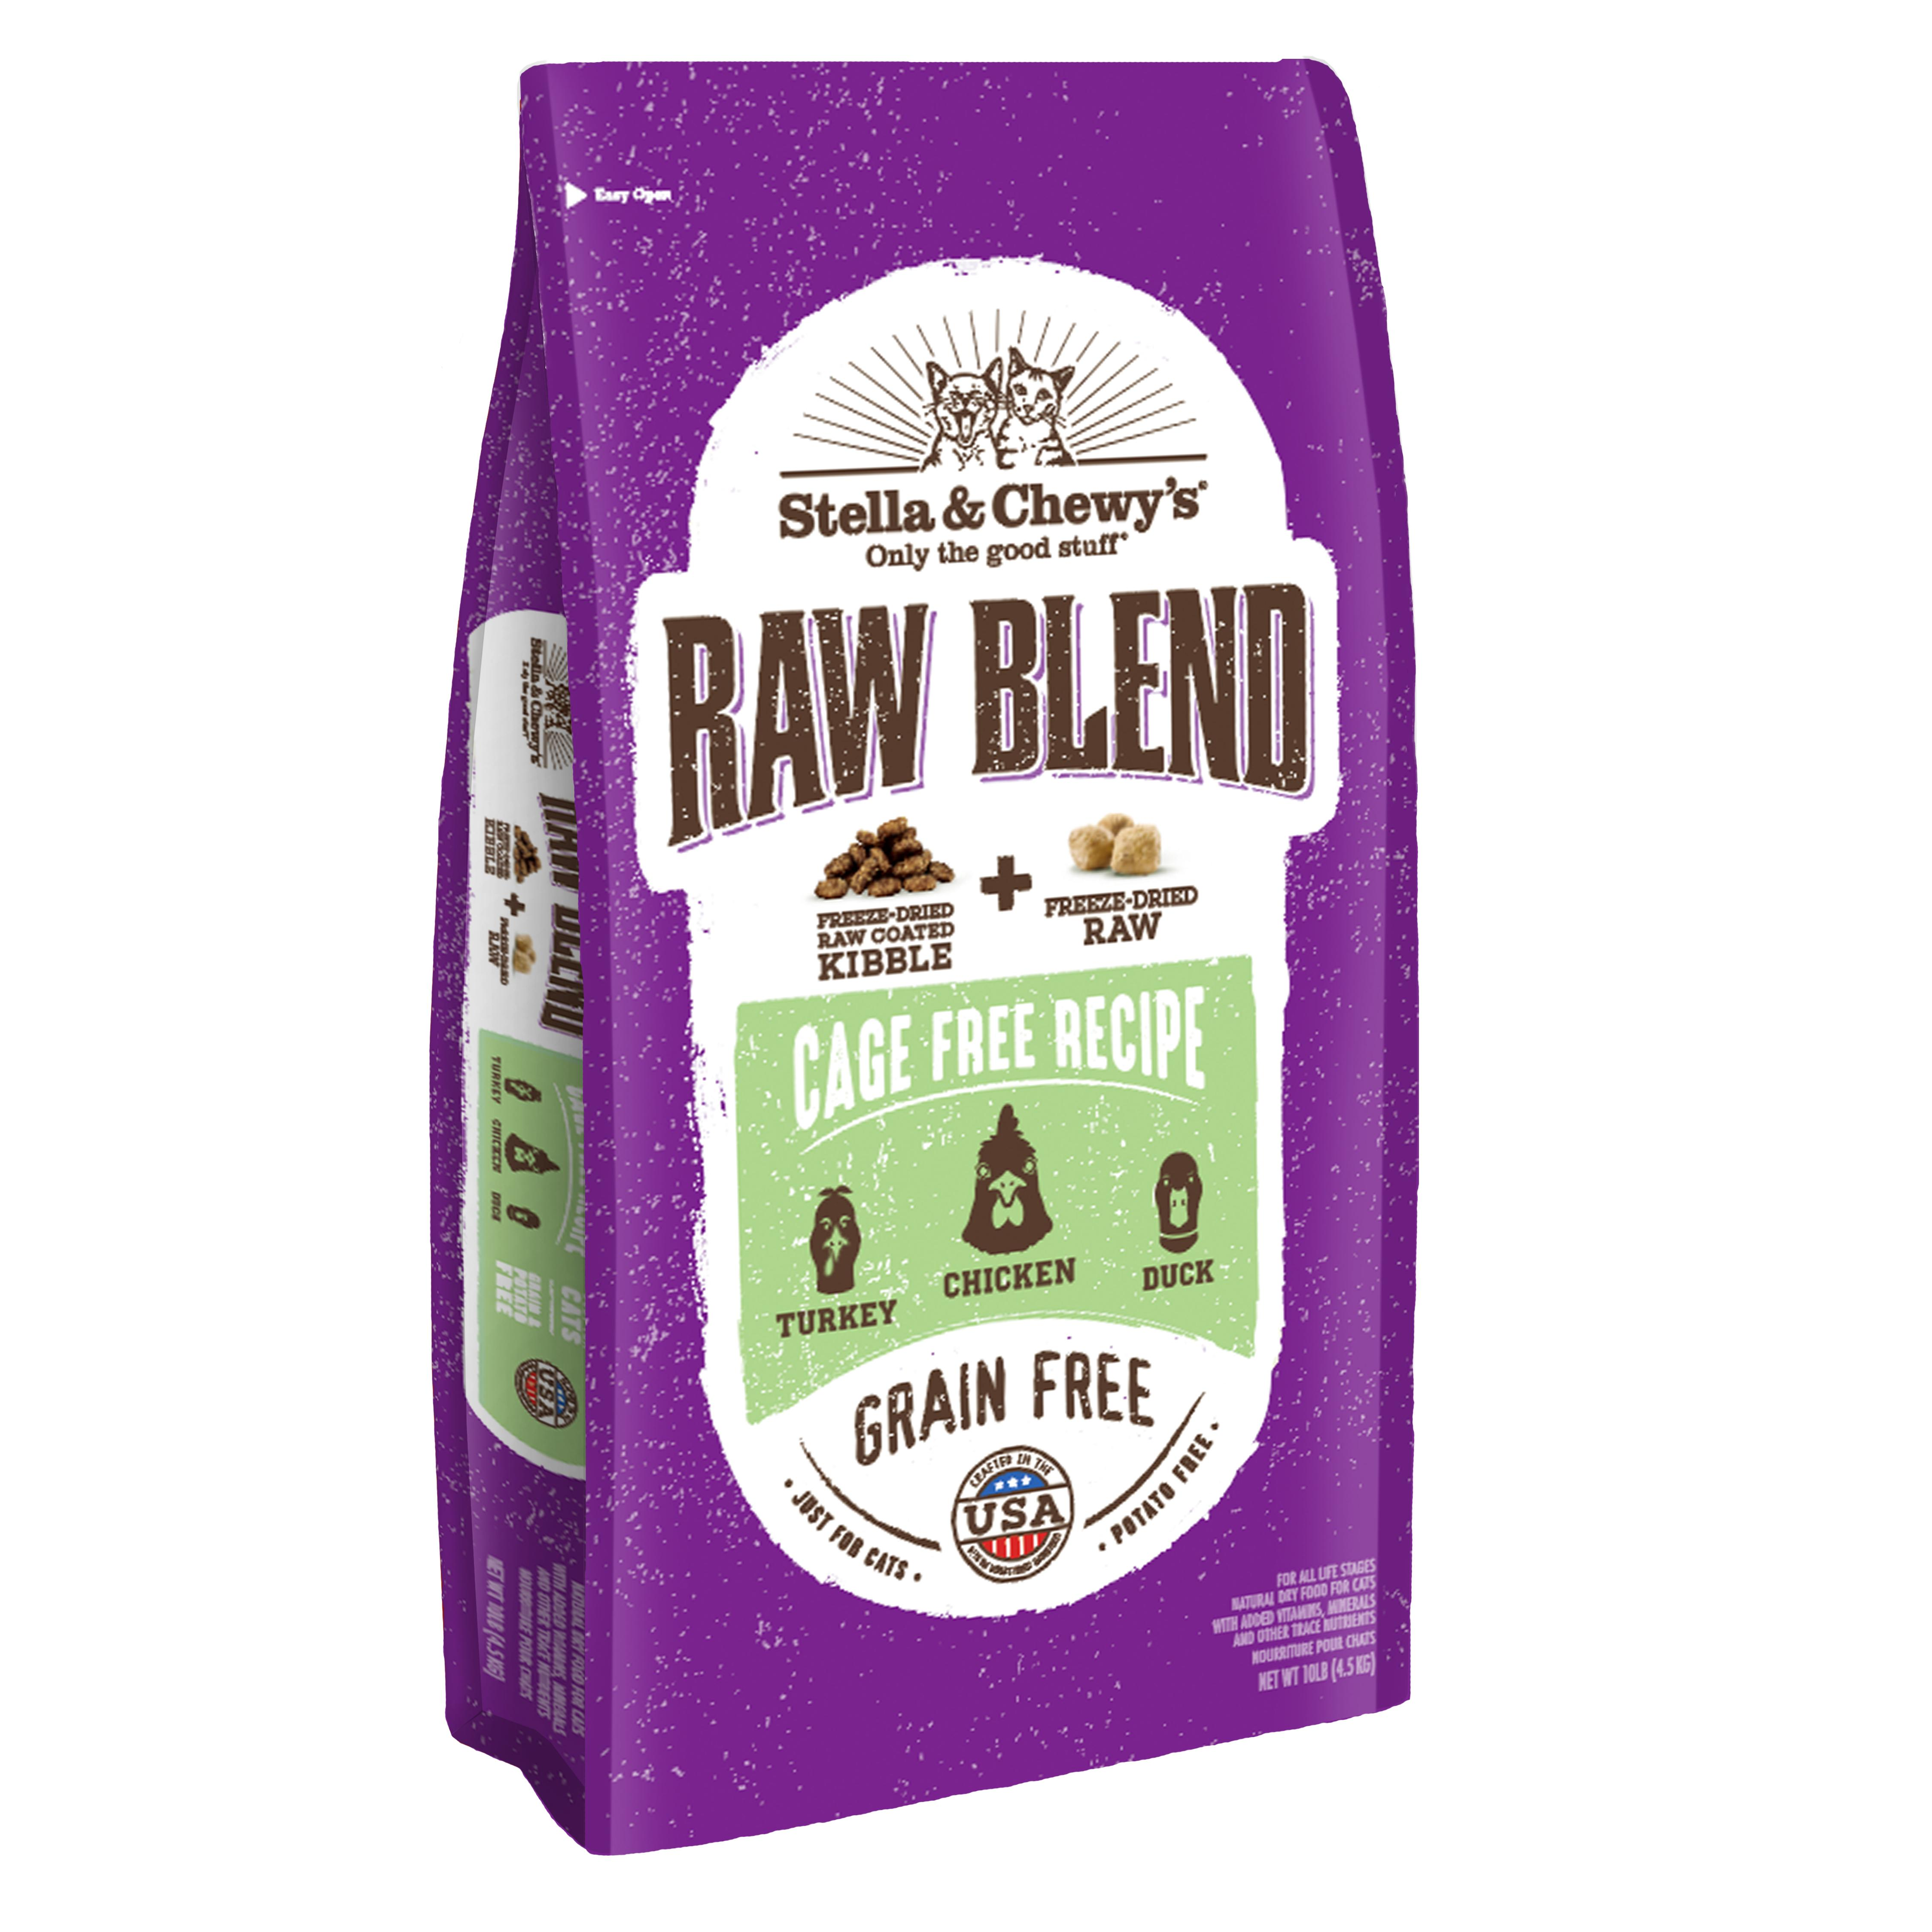 Stella & Chewy's Raw Blend Cage-Free Poultry Recipe Dry Cat Food, 10-lb